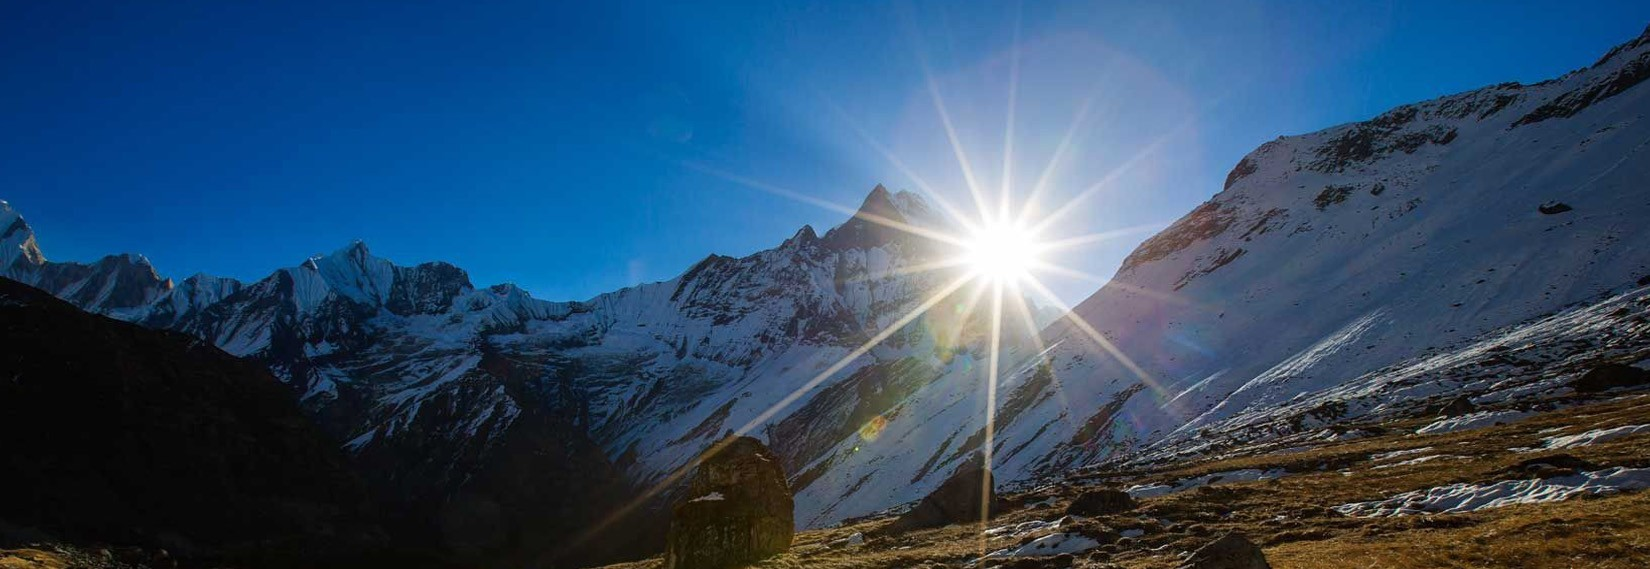 Sunrise from Annapurna Base Camp